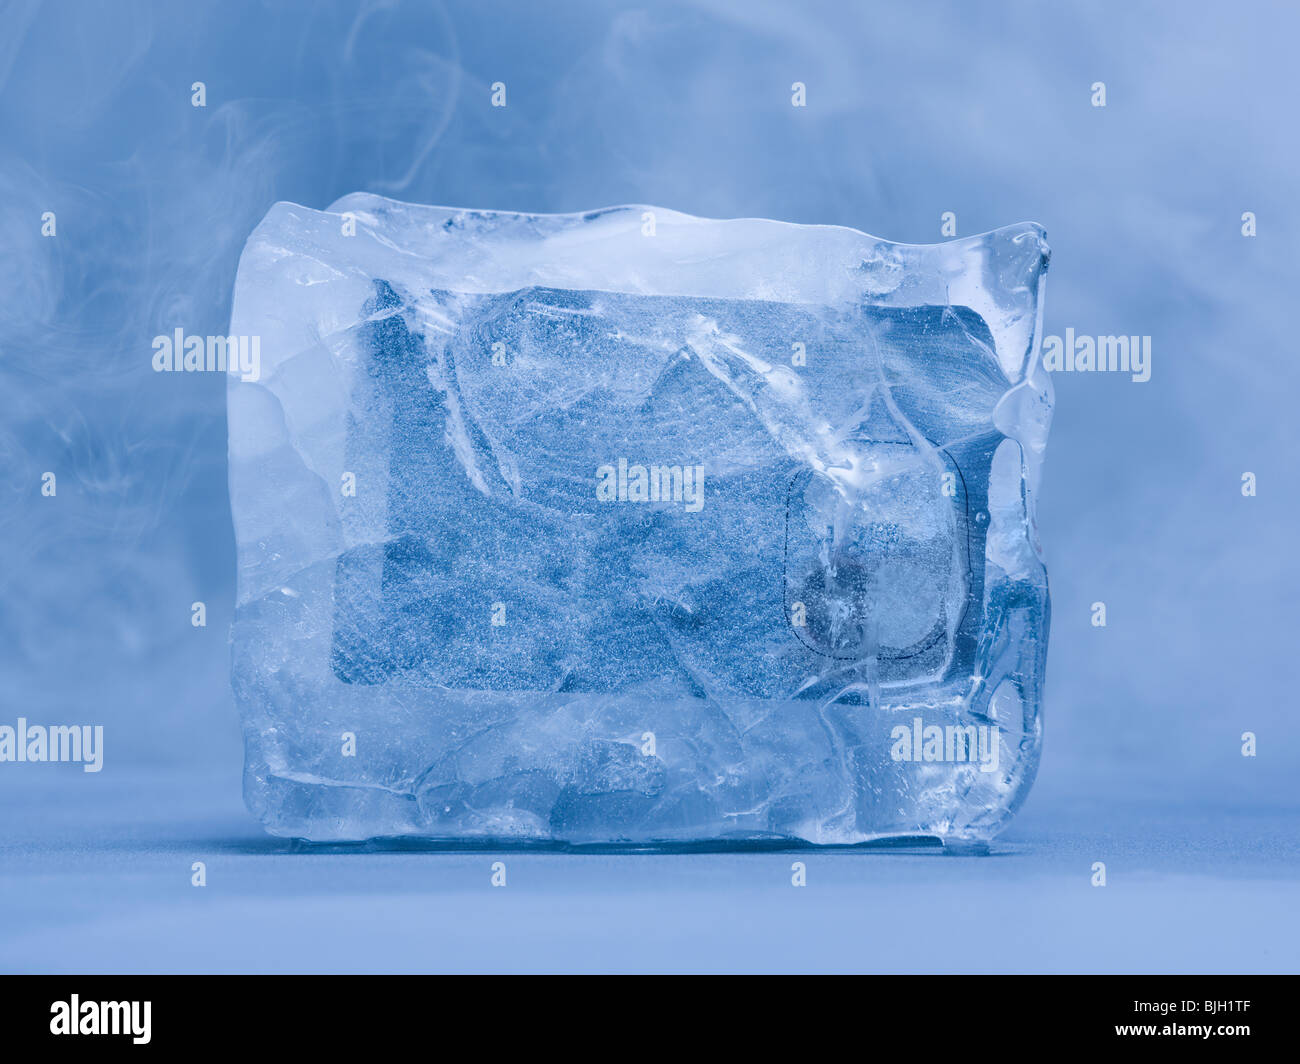 credit card frozen in ice - Stock Image